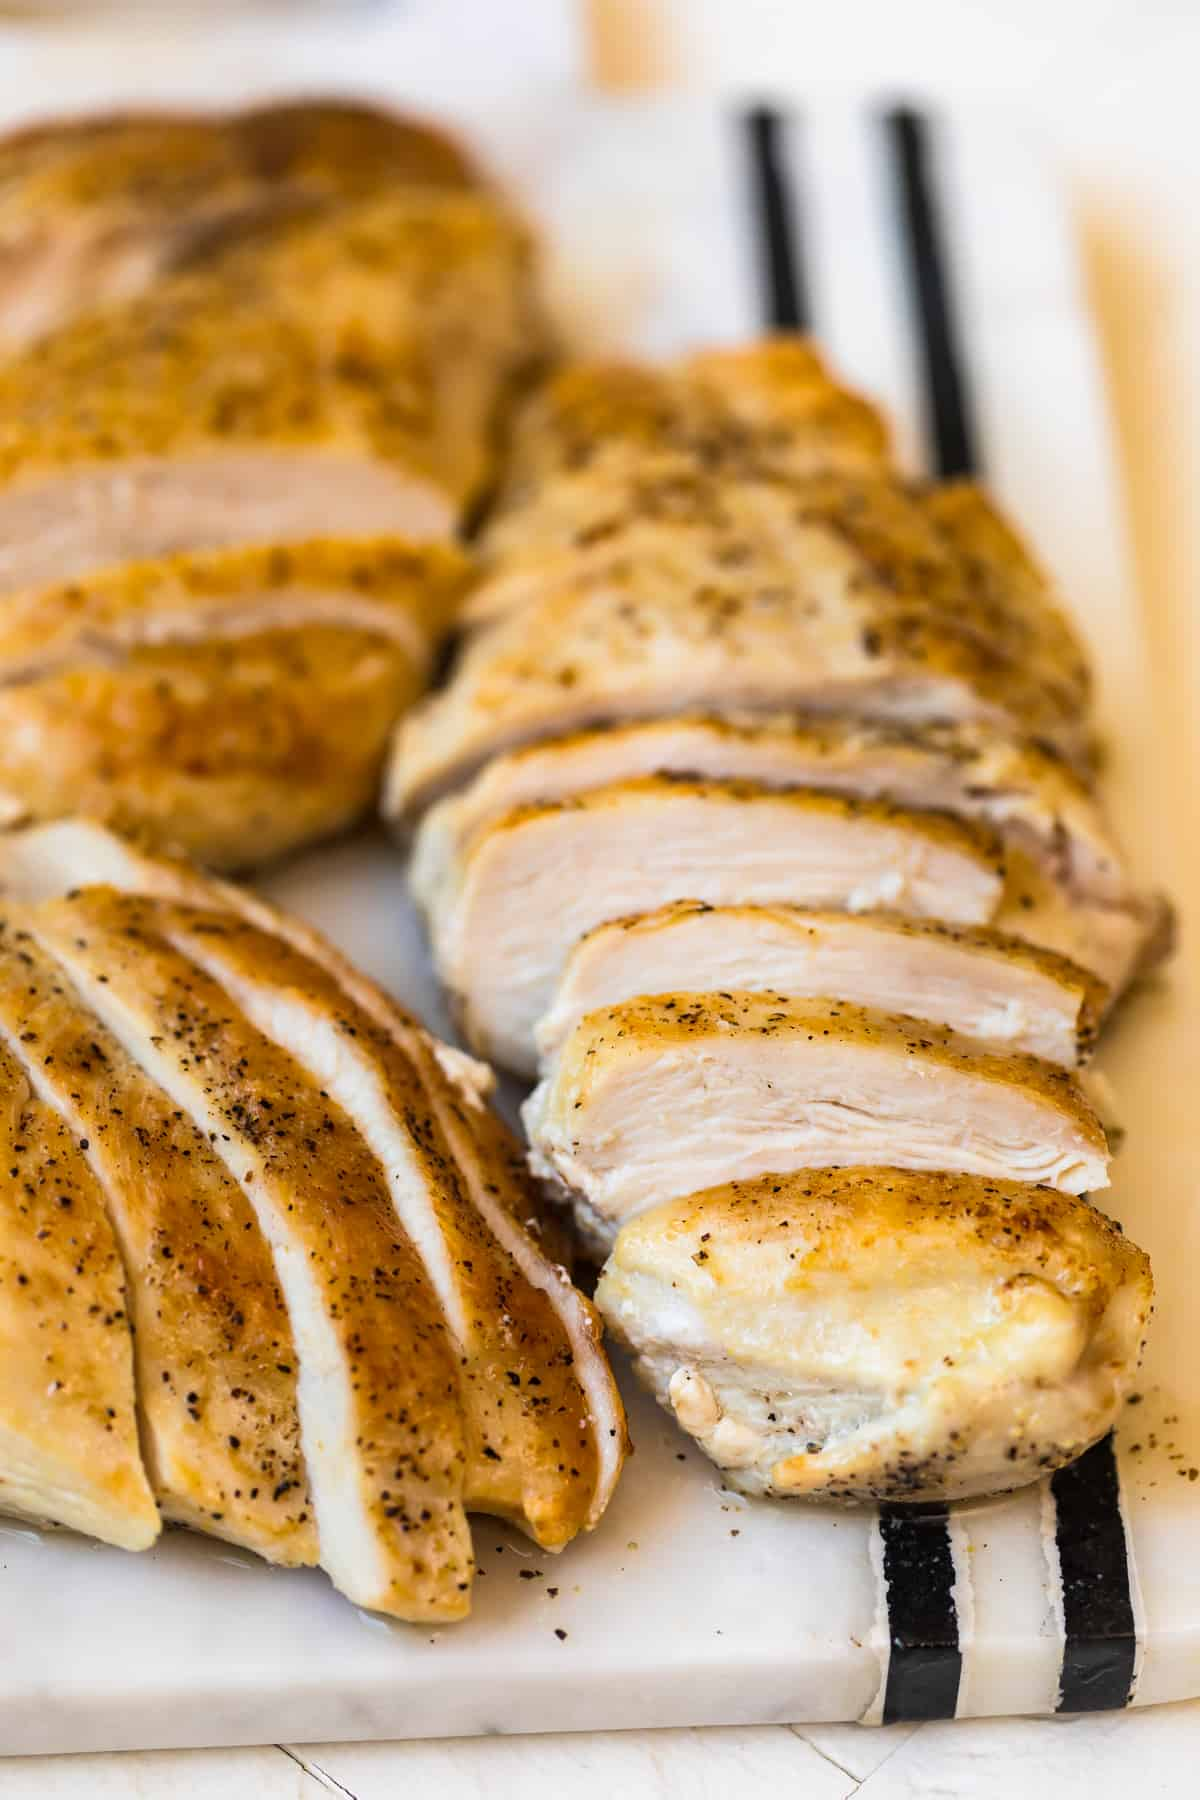 Pan seared chicken breasts sliced